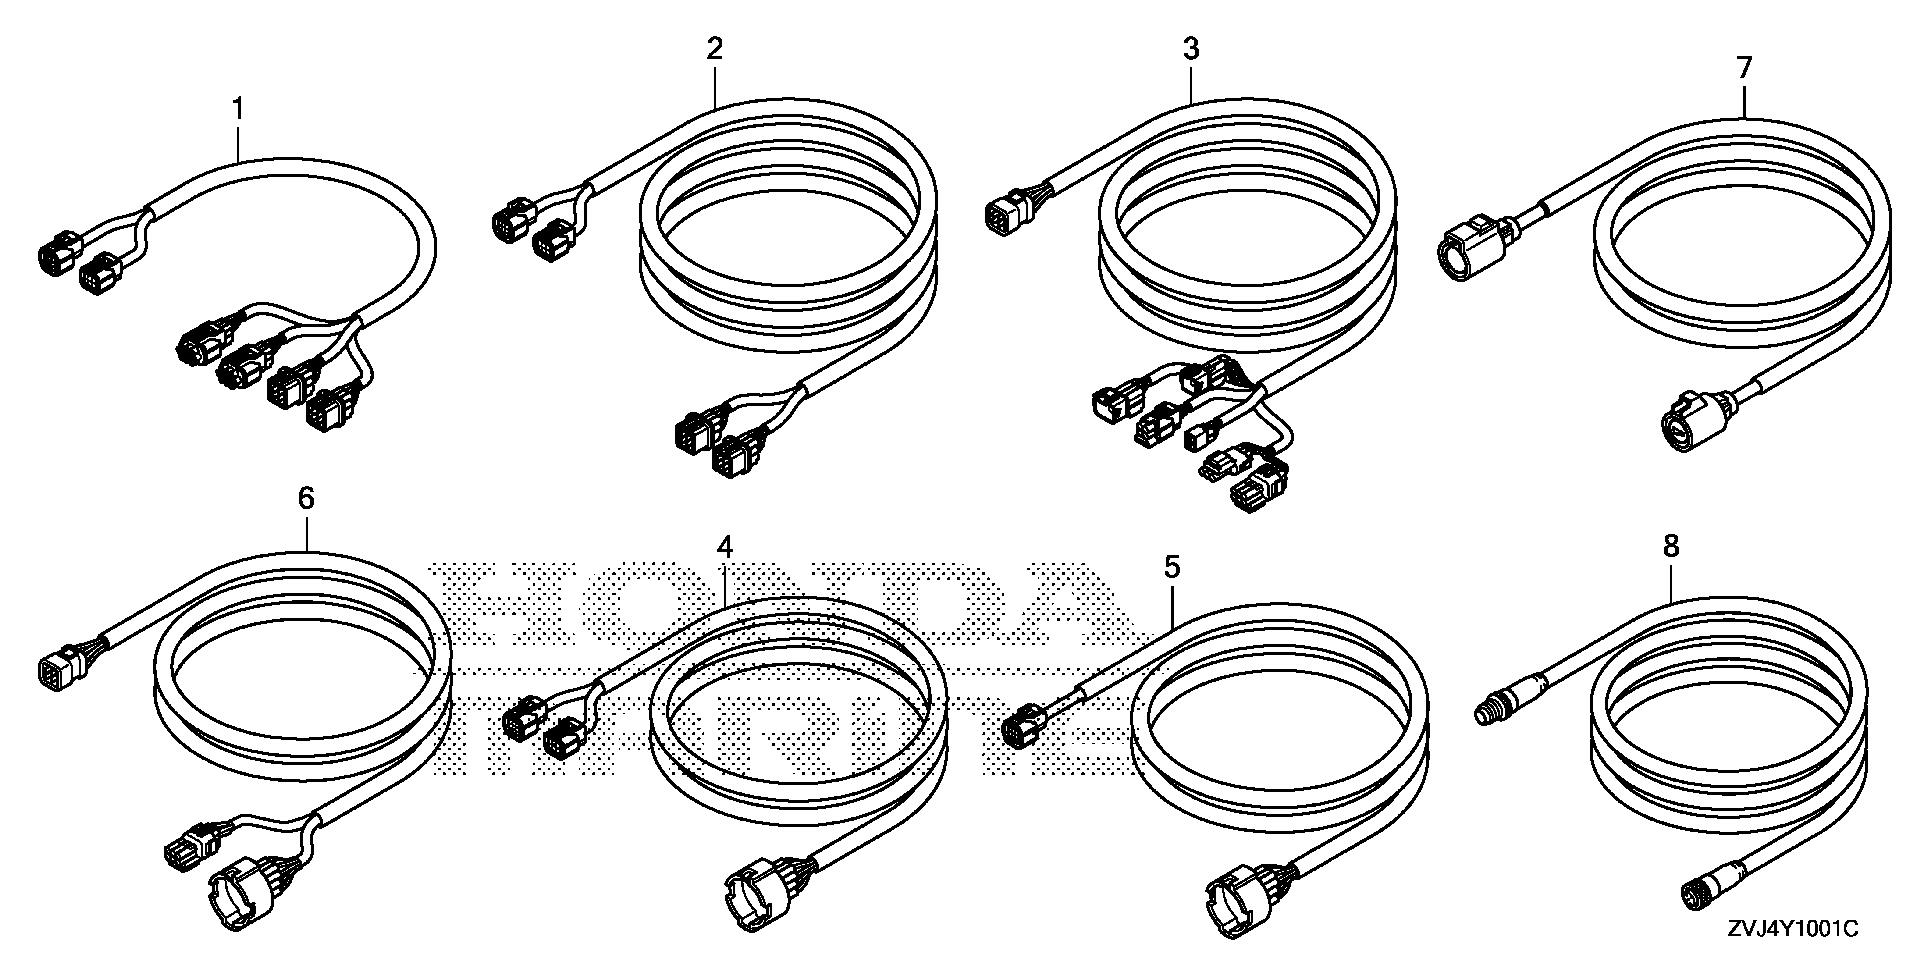 CABLE KIT (2)